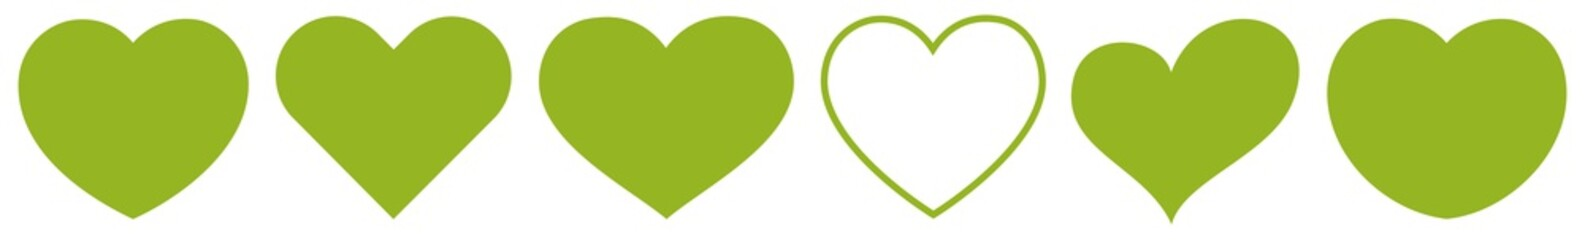 Heart Green | Eco | Nature | Love | Logo | Variations